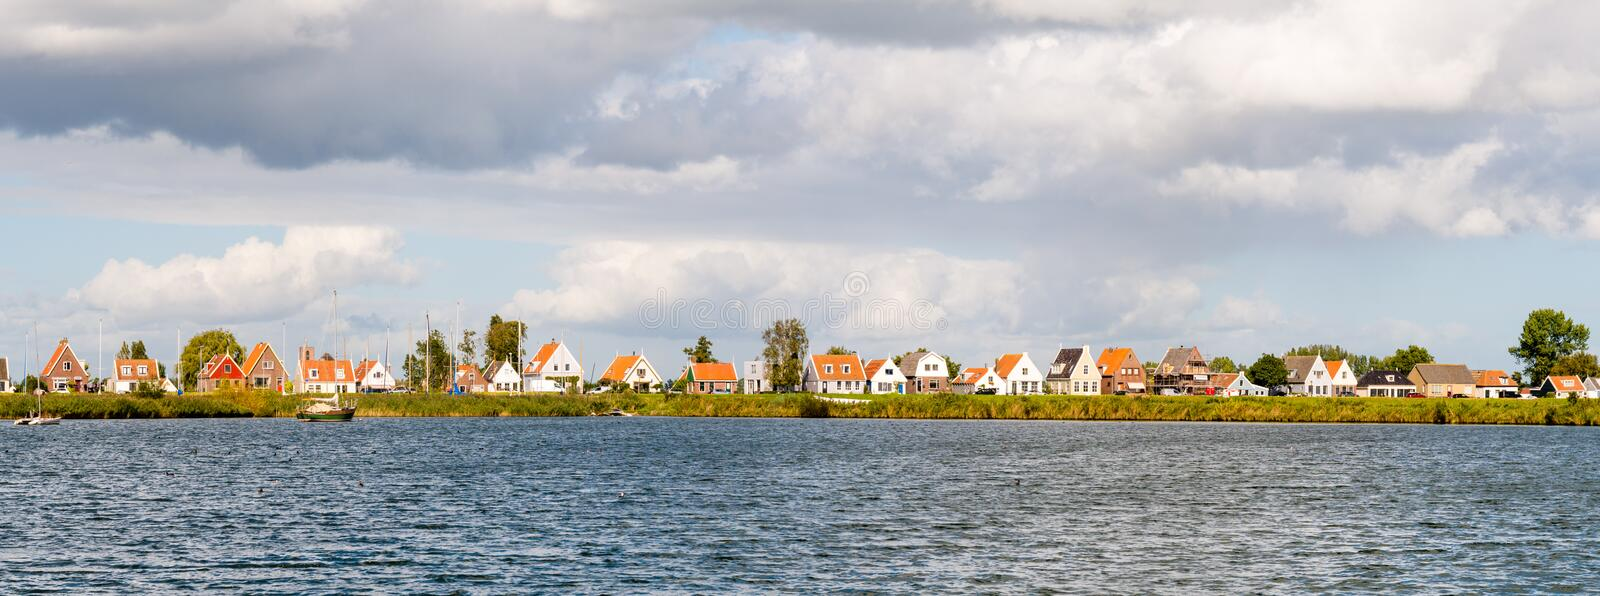 Skyline of village Durgerdam with old houses and boats, IJm stock photography